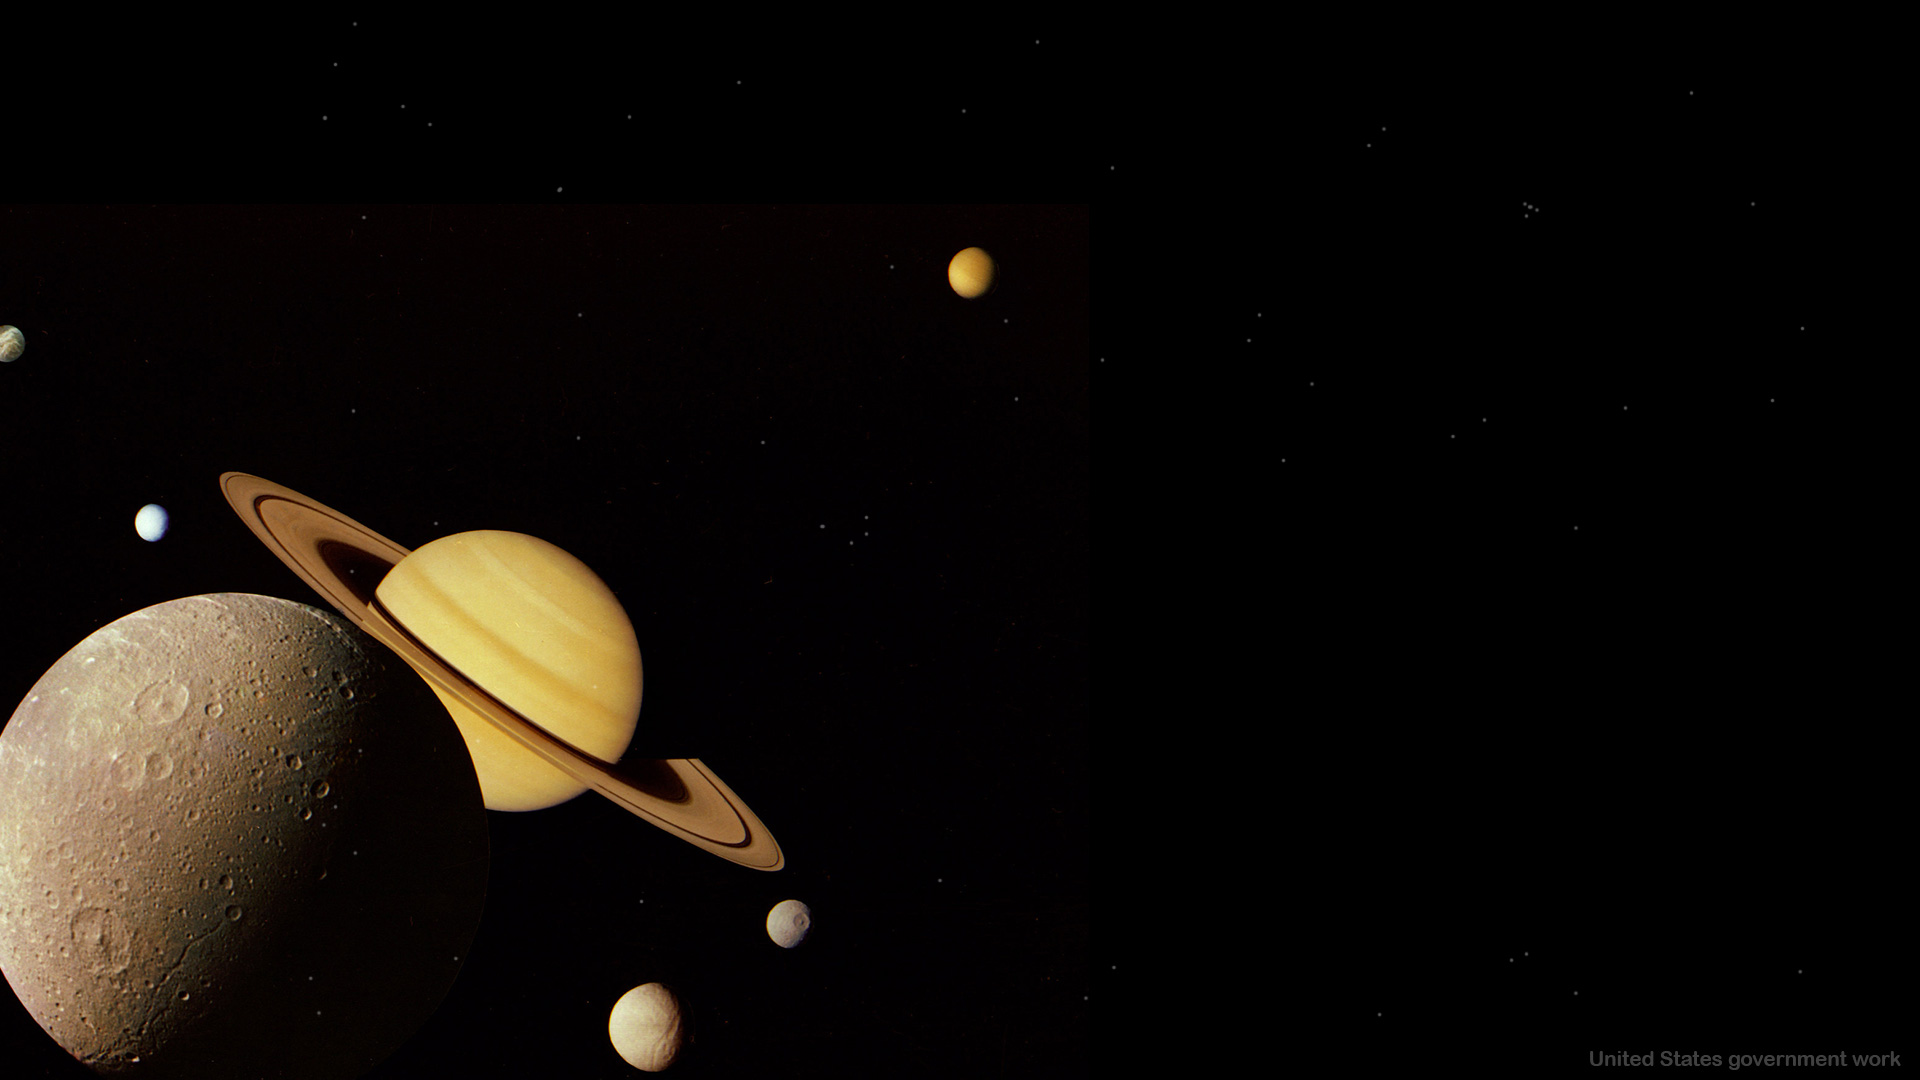 Saturn and its moon - presentation background for free